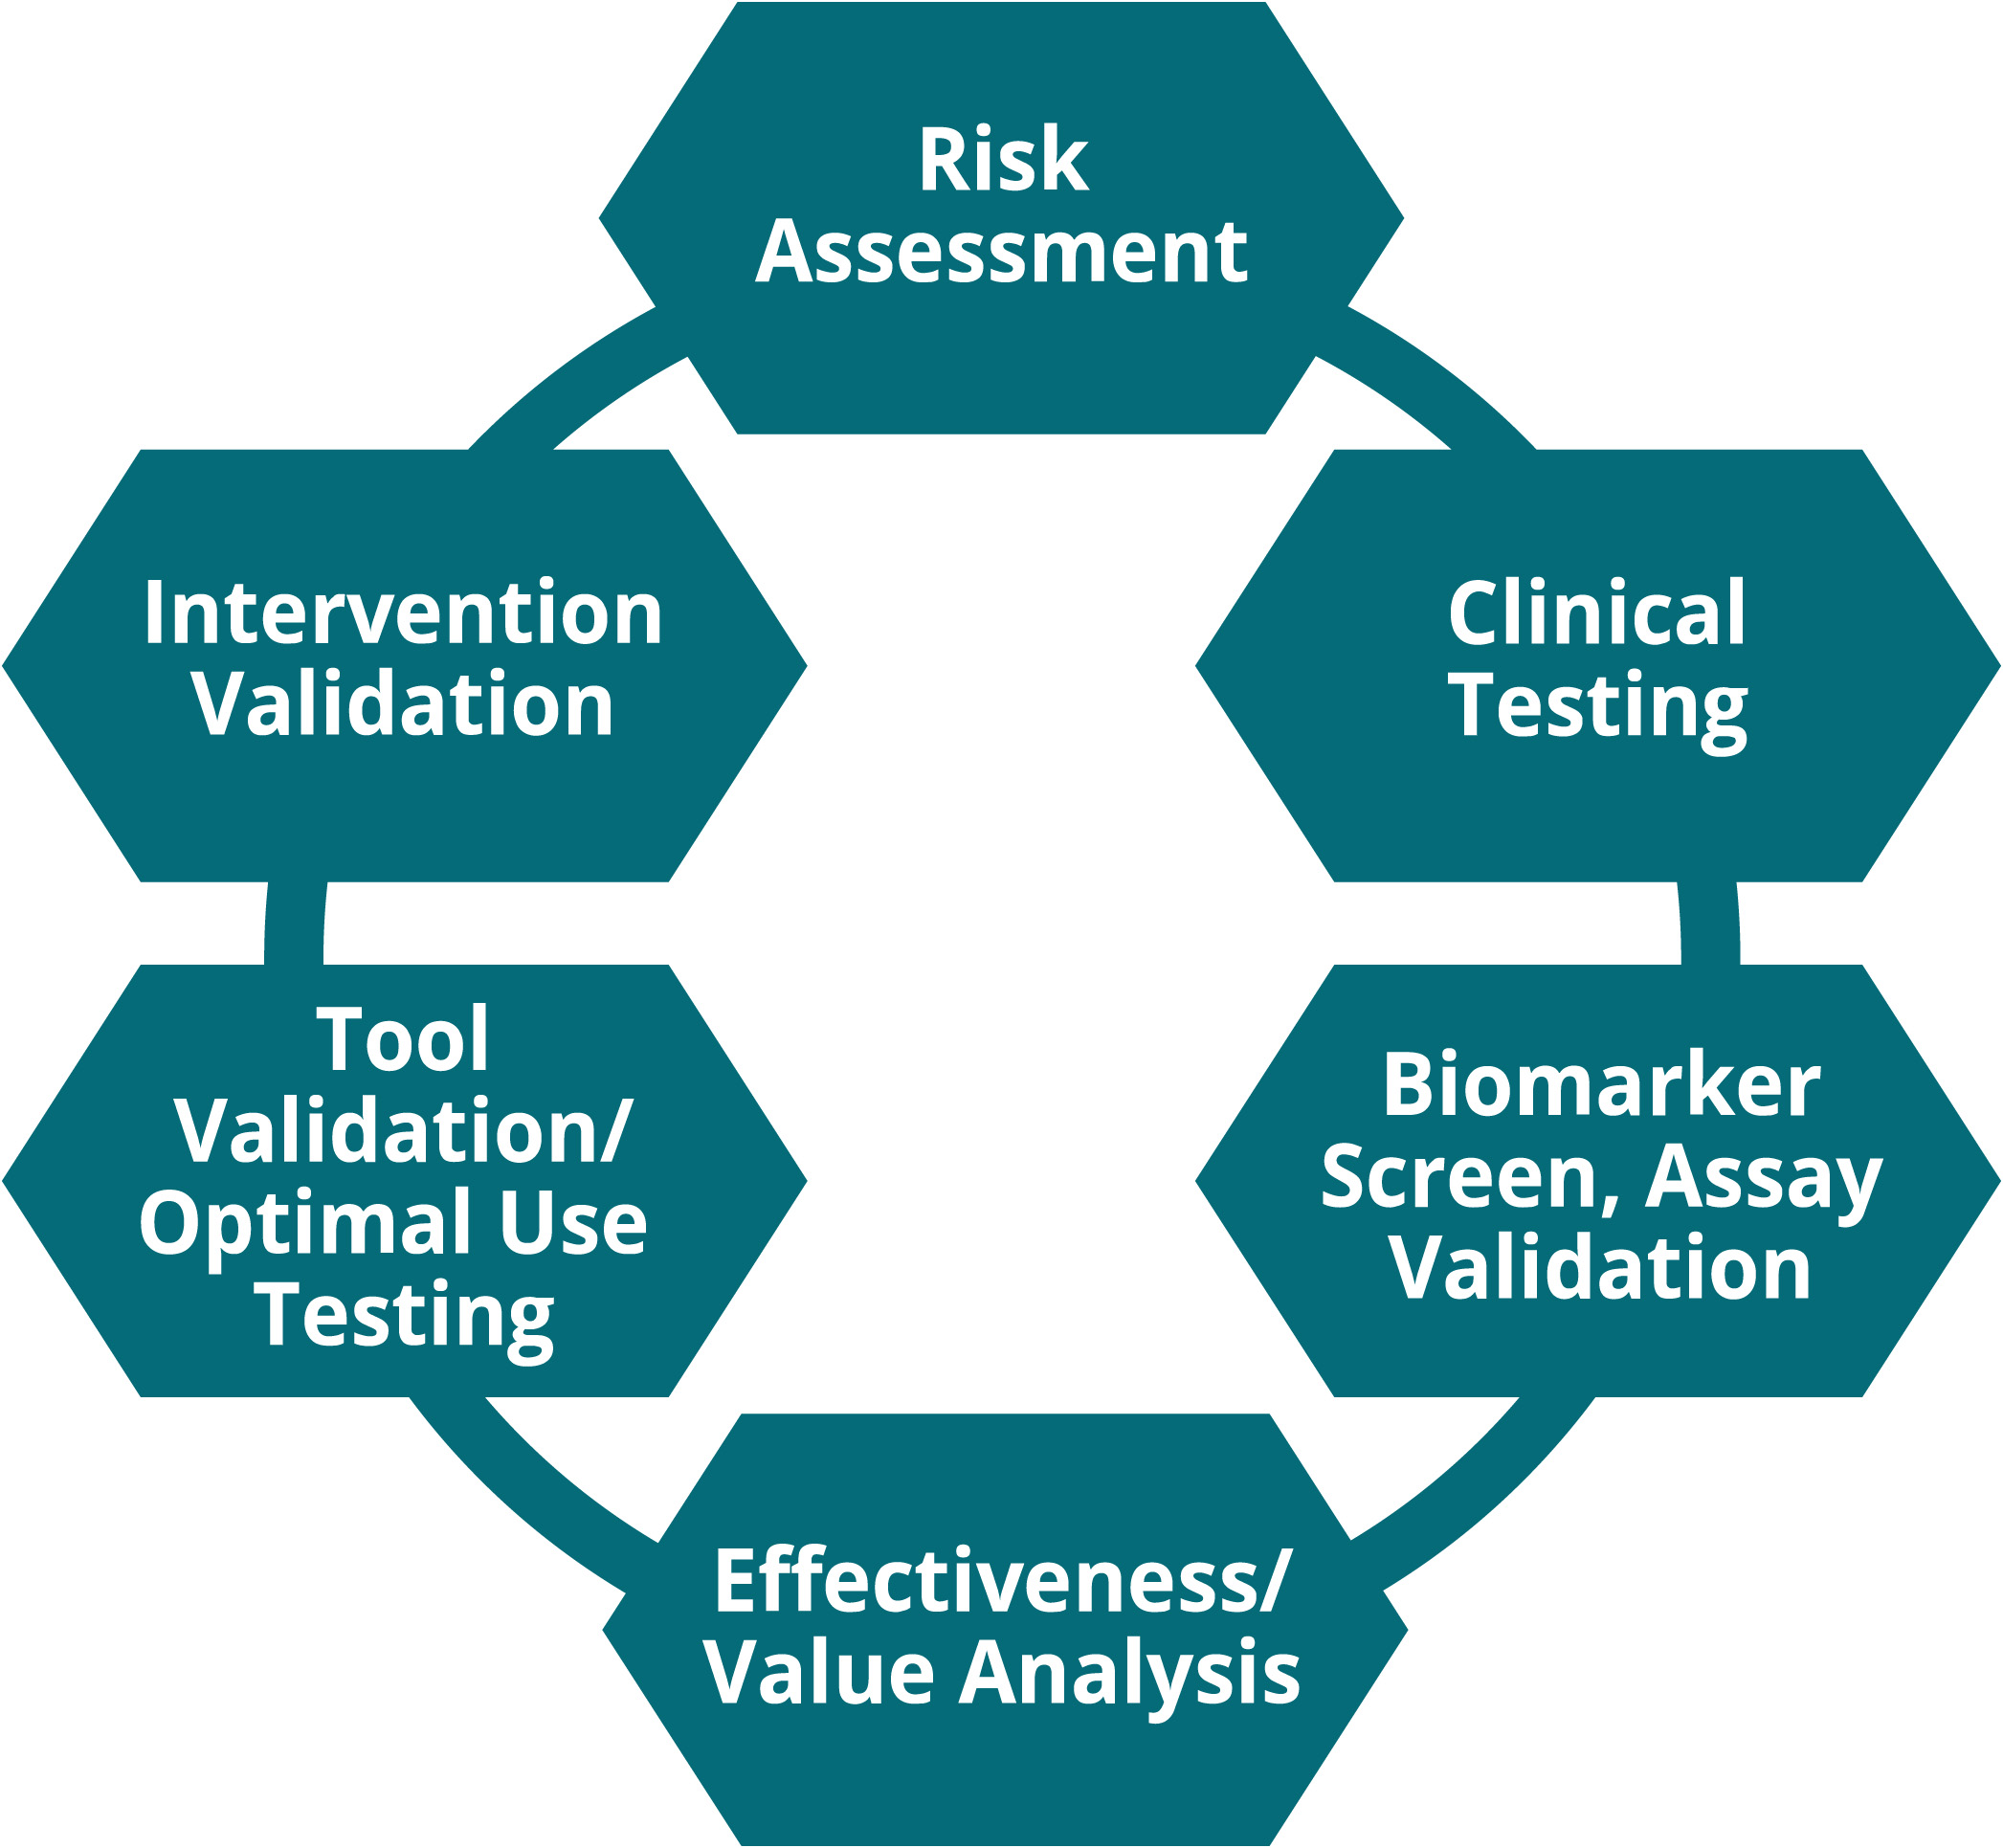 The implementation and adjustment category is represented as a green ring that includes seven activities that we've identified that environmental health researchers tend to conduct within this category. These activities are represented as nodes along the ring and include Effectiveness or Value Analysis, Tool Validation and Optimal Use Testing, Intervention Validation, Risk Assessment, Clinical Testing, and Biomarker Screen or Assay Validation.